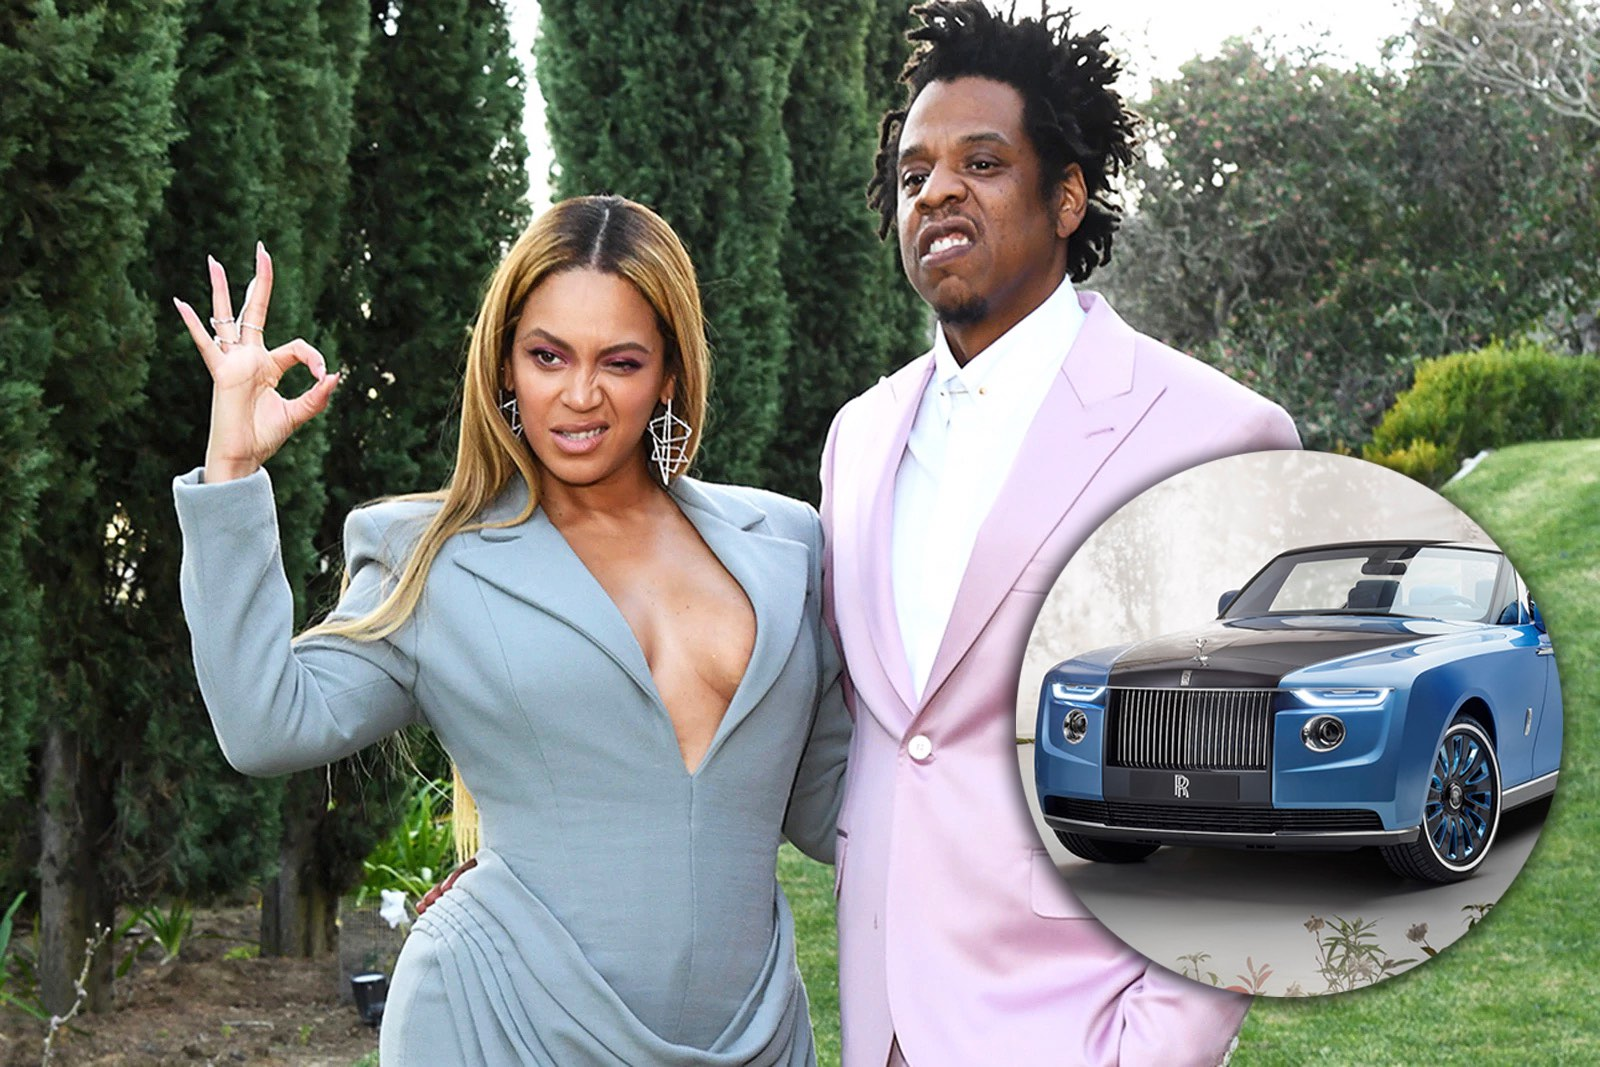 1625044151 806 Beyonce celebrated the 4th birthday of her twins Rumi and